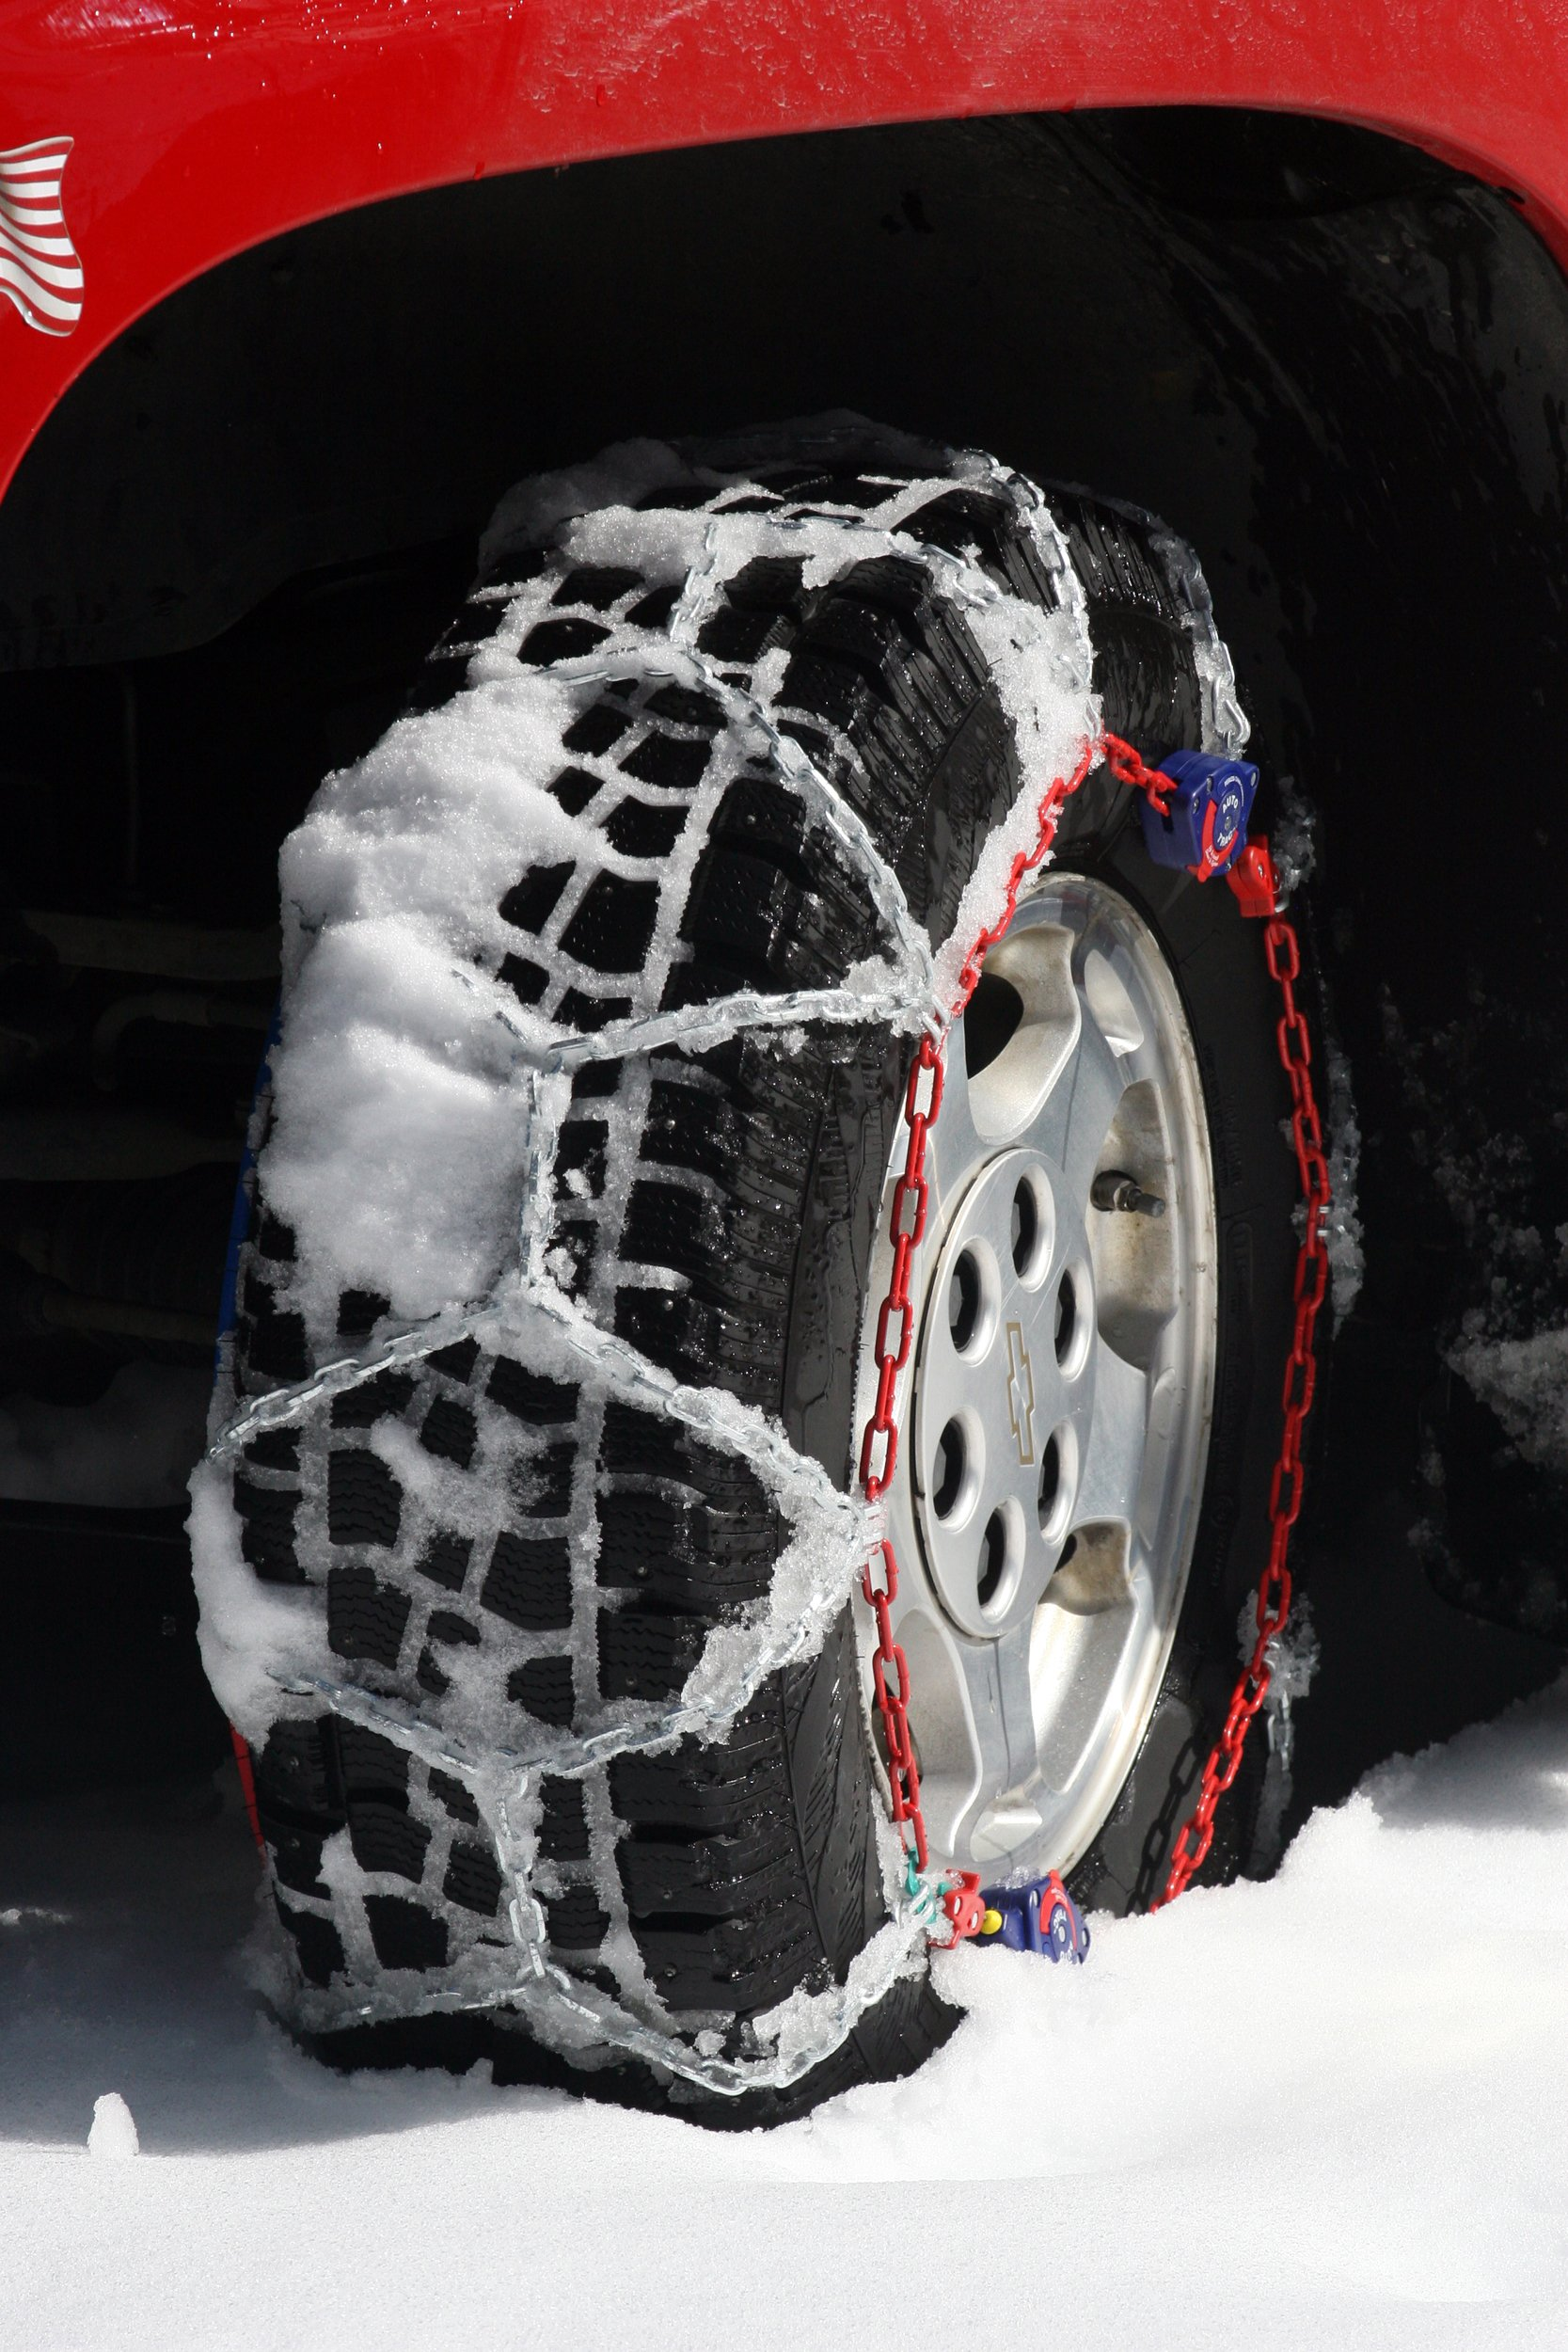 Peerless 0231705 Auto-Trac Light Truck/SUV Tire Traction Chain - Set of 2 by Security Chain (Image #4)